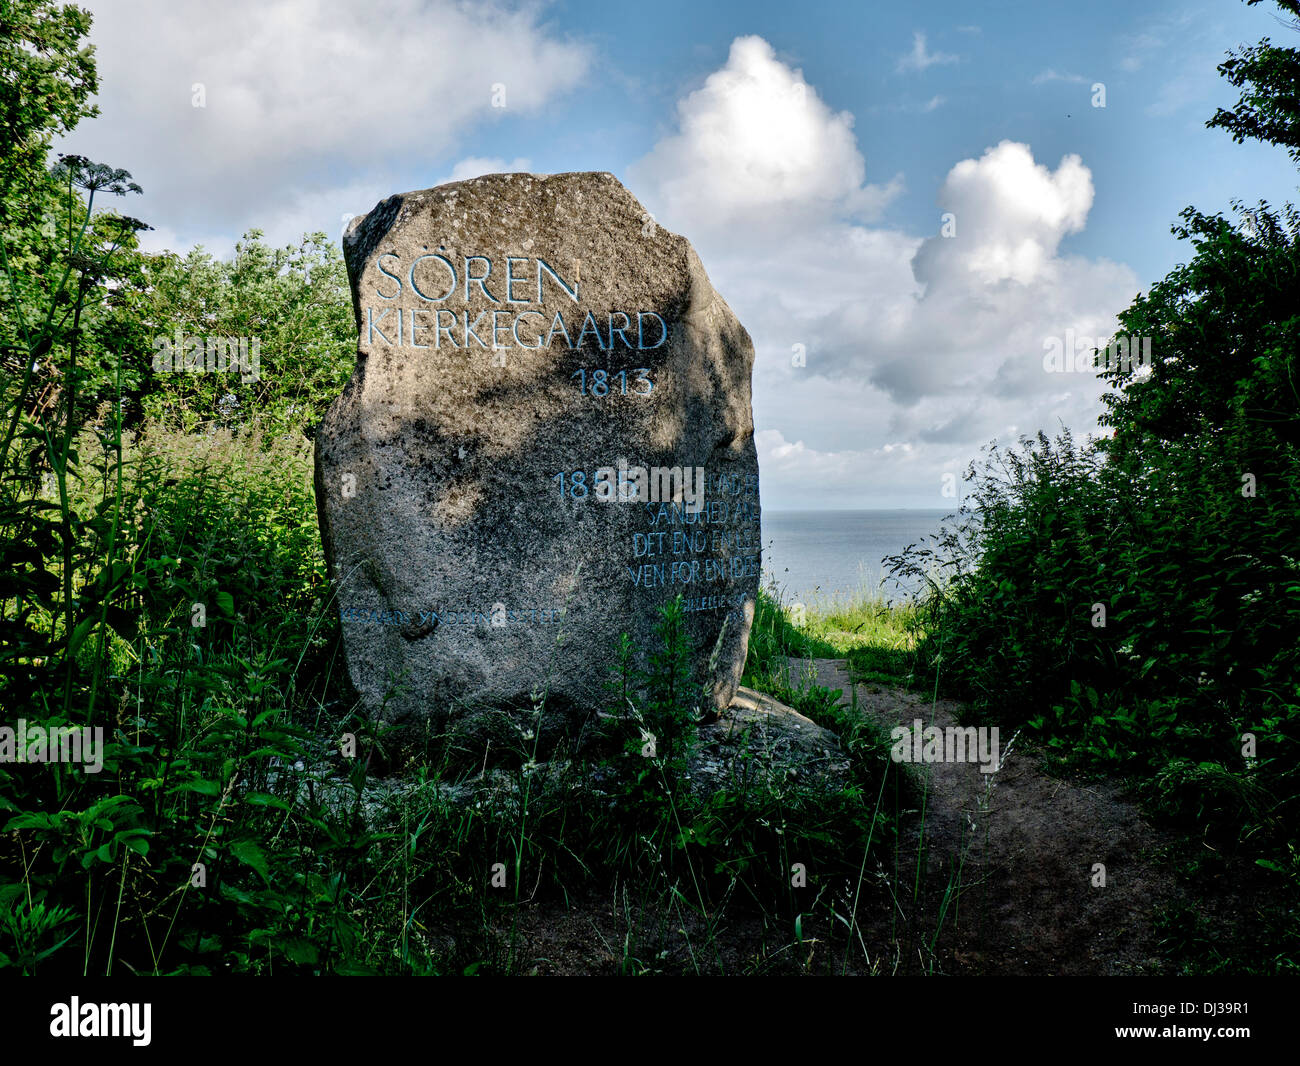 Memorial stone for Soeren Kirkegaard, the danish philosopher, on top of the bluff of Nordsjaelland, Denmark. - Stock Image